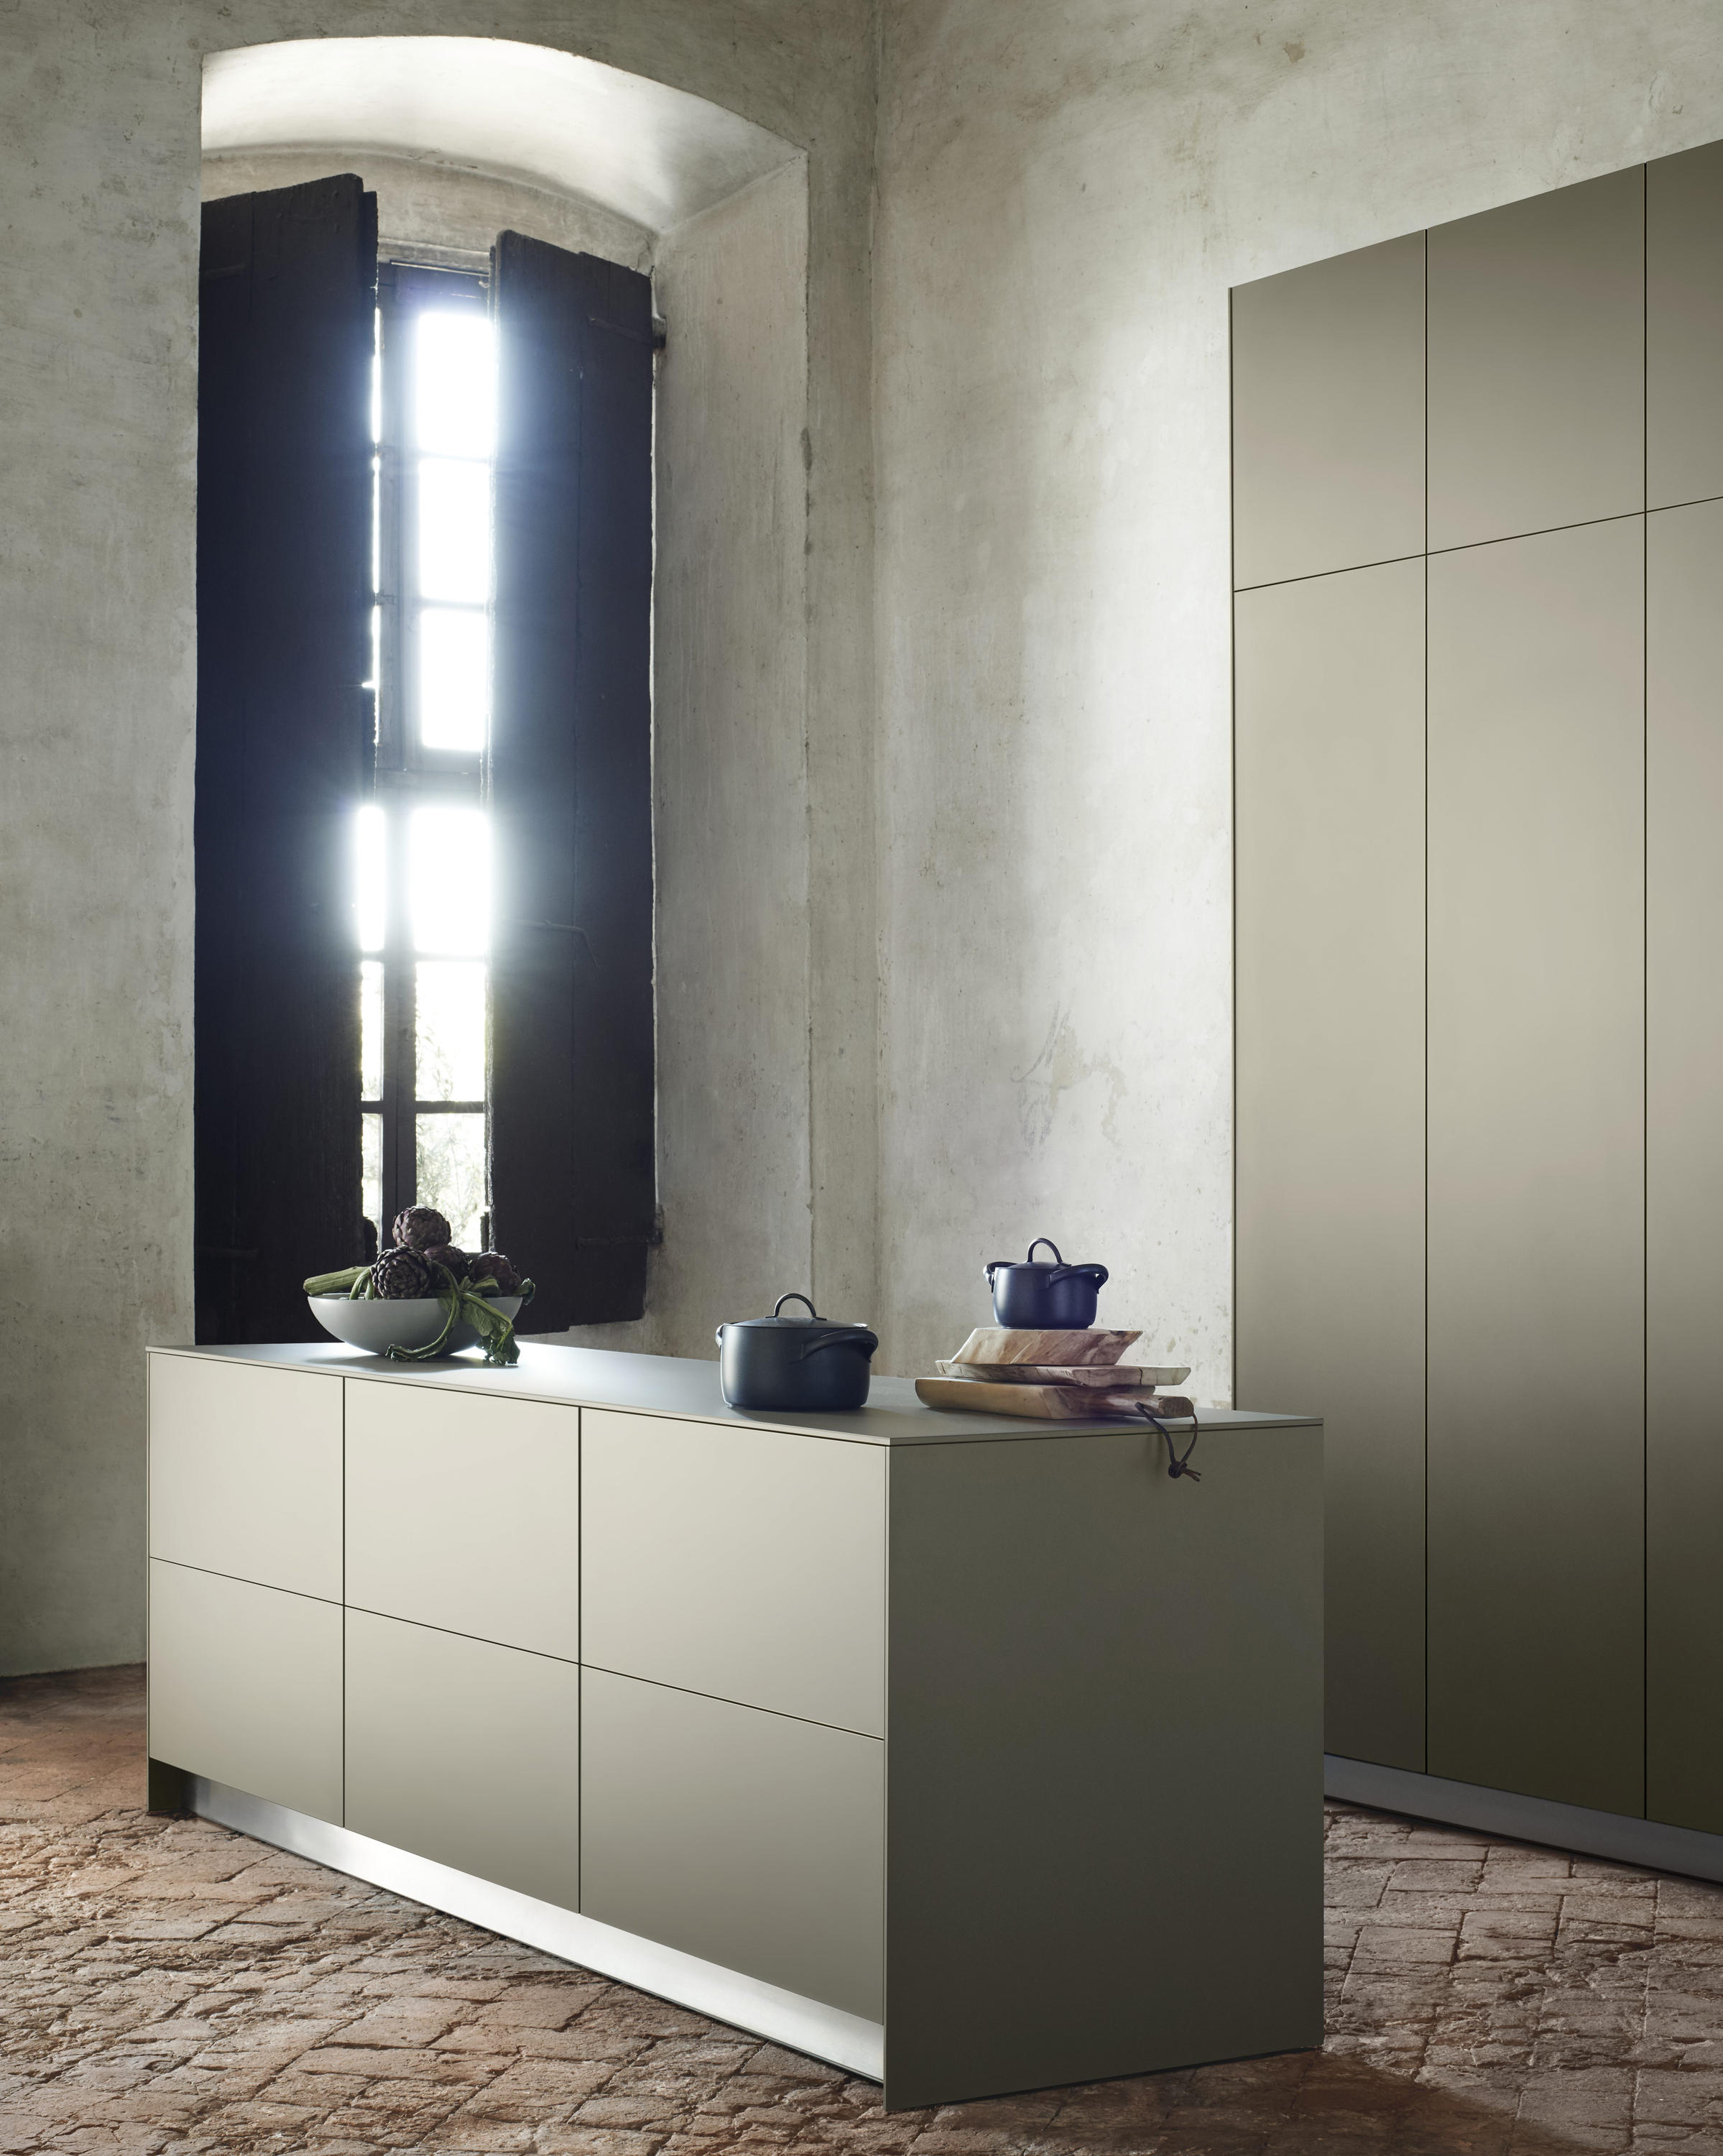 b3 laminate fitted kitchens from bulthaup architonic. Black Bedroom Furniture Sets. Home Design Ideas